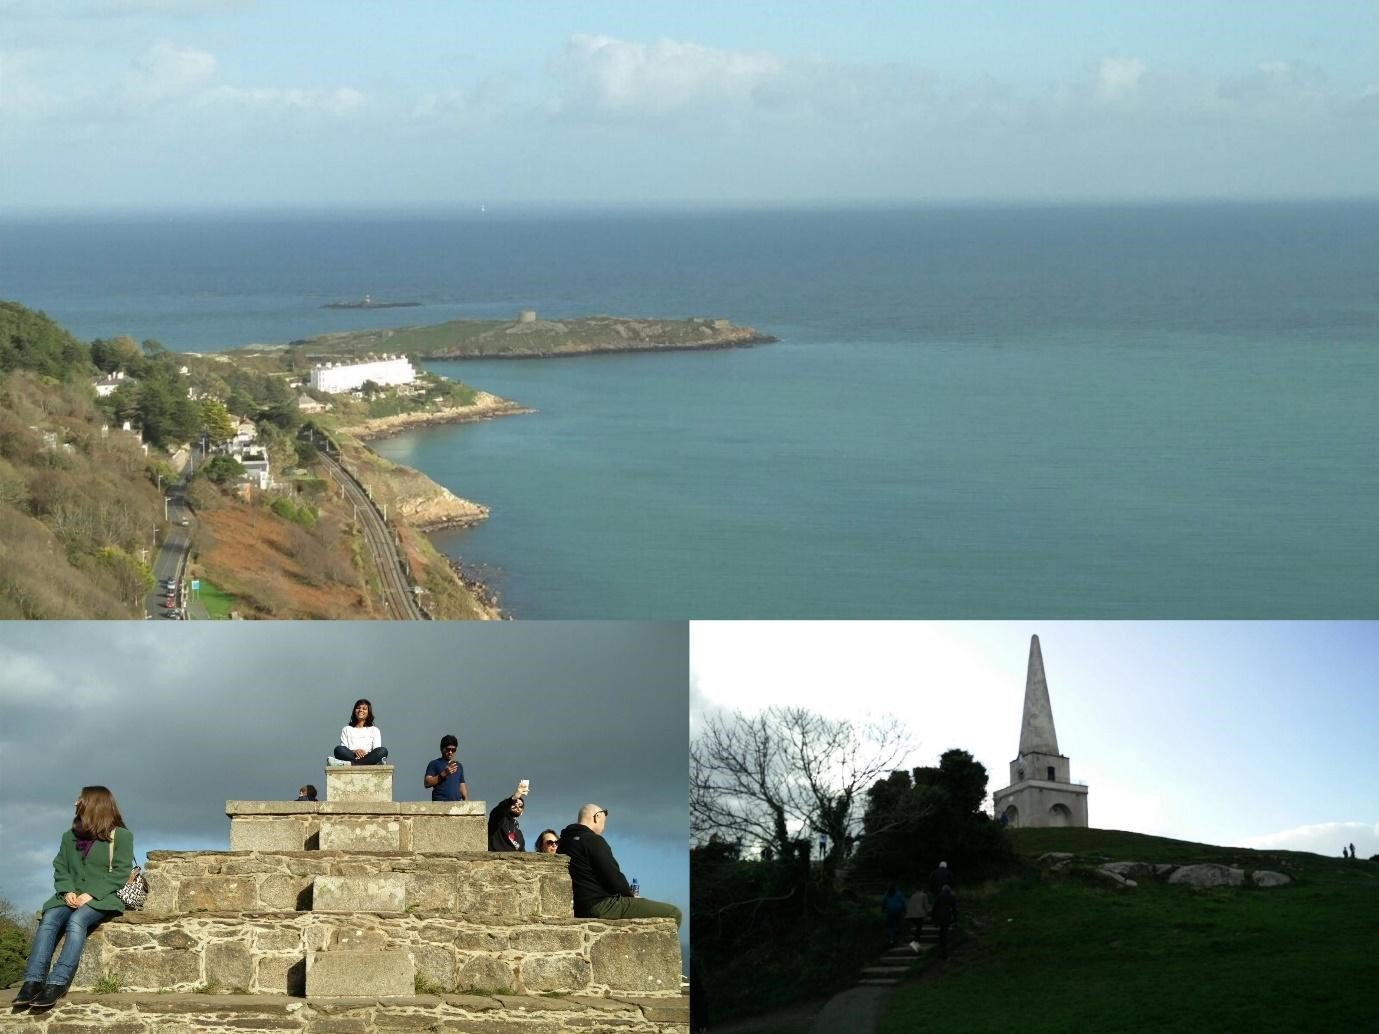 1. Killiney Hill Park